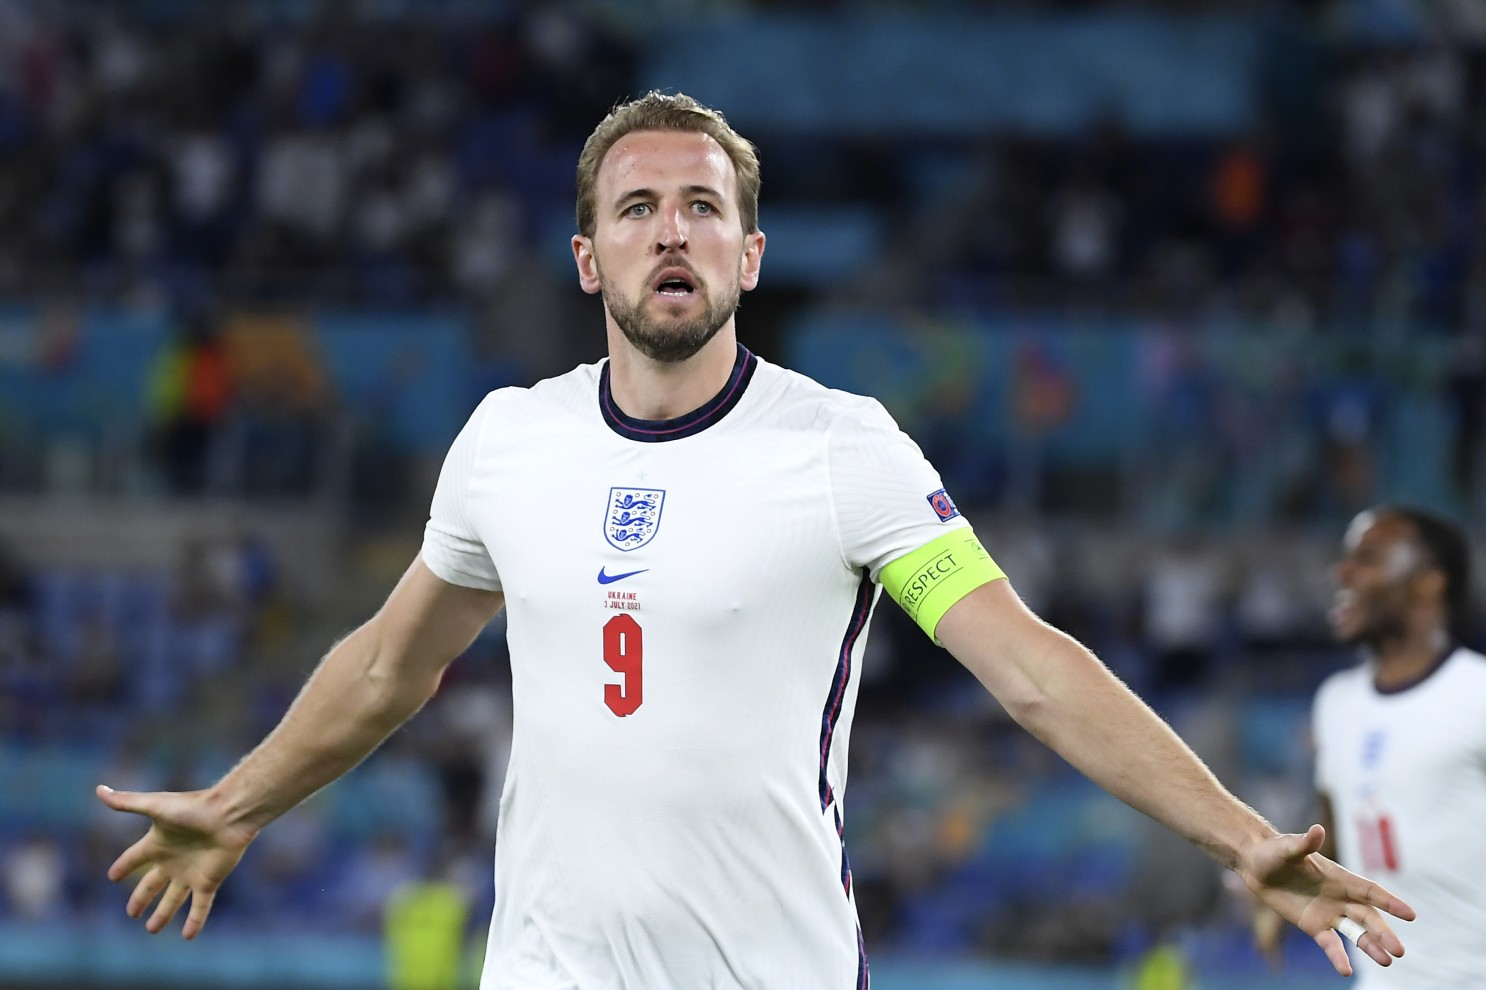 The long-awaited moment for England with Kane's Score (Source: The San Diego Union Tribune)